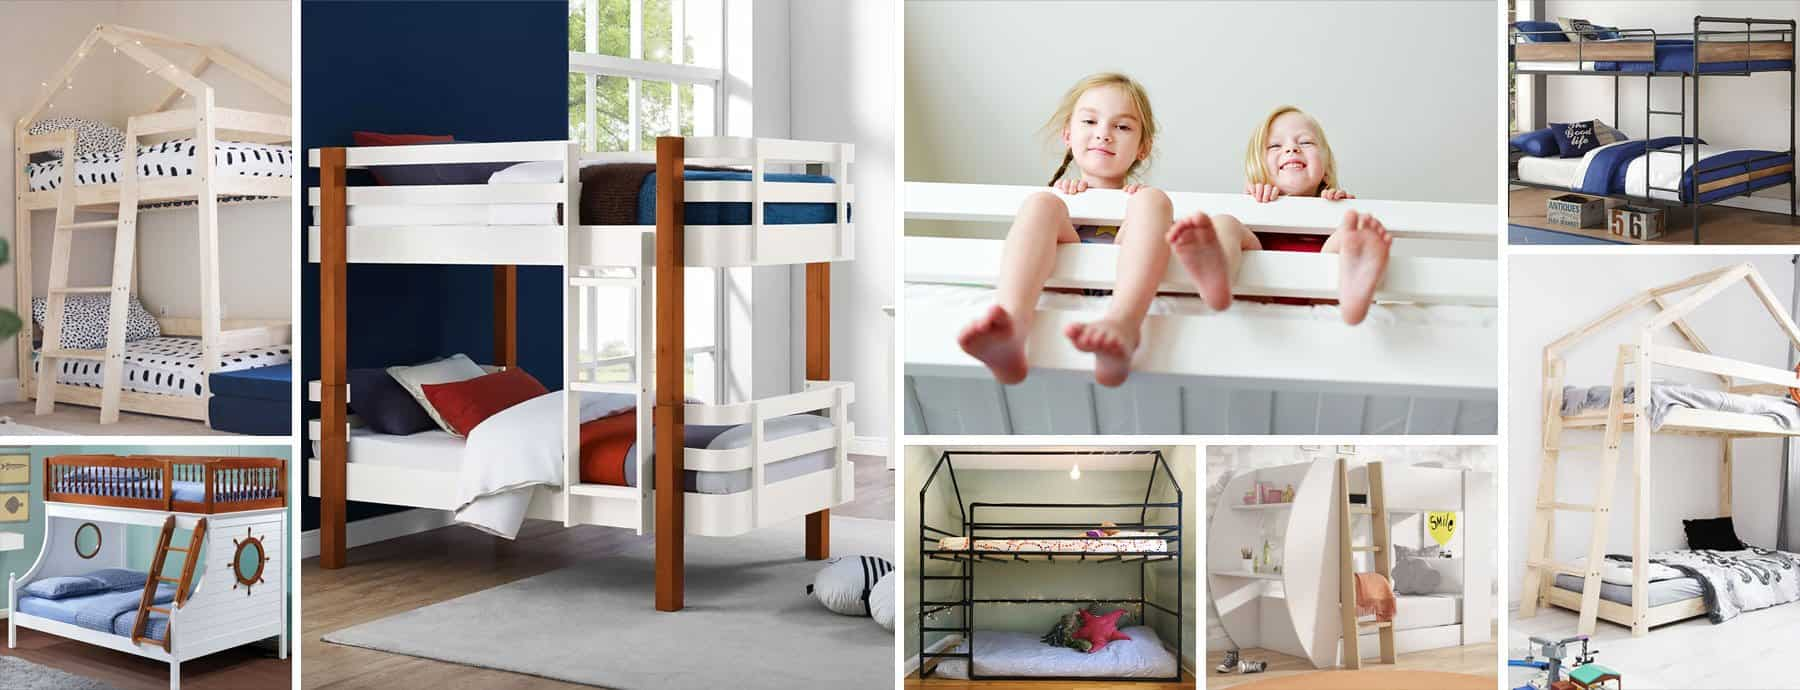 20 Best Bunk Beds To Buy Online Buying Guide 2020 Nursery Kid S Room Decor Ideas My Sleepy Monkey